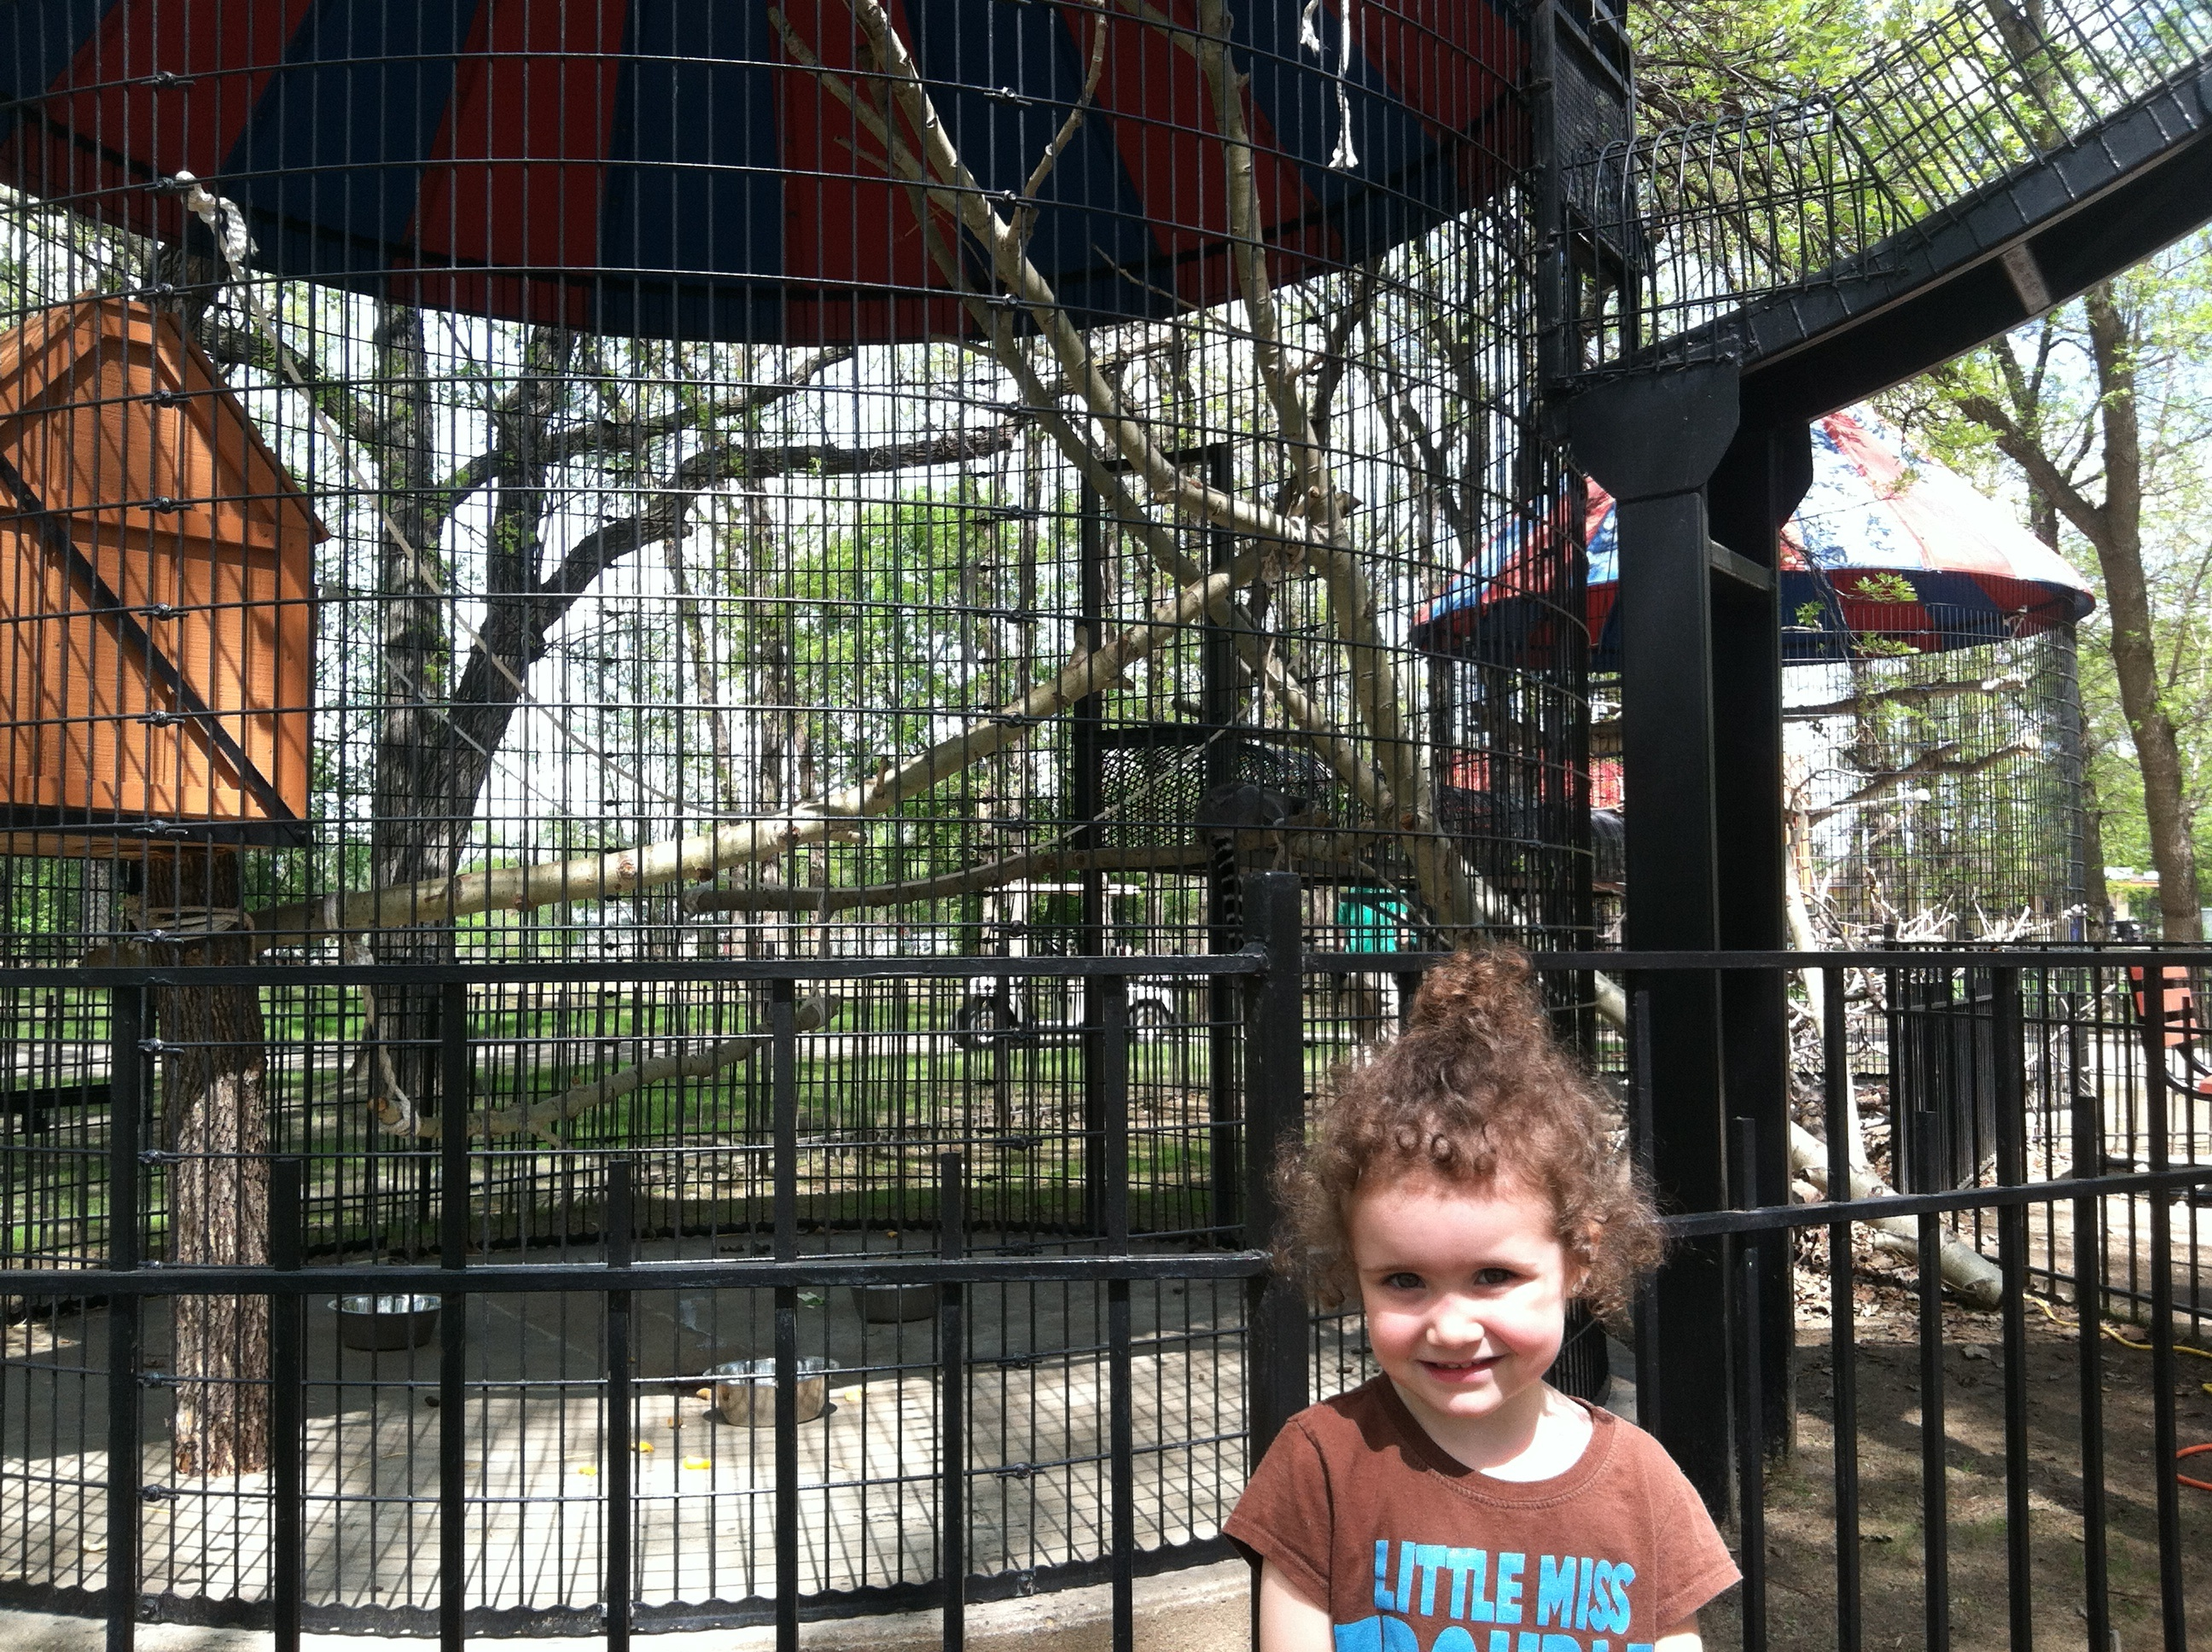 They are kind of hard to see, but there are a few Ring-Tailed Lemurs in the background.